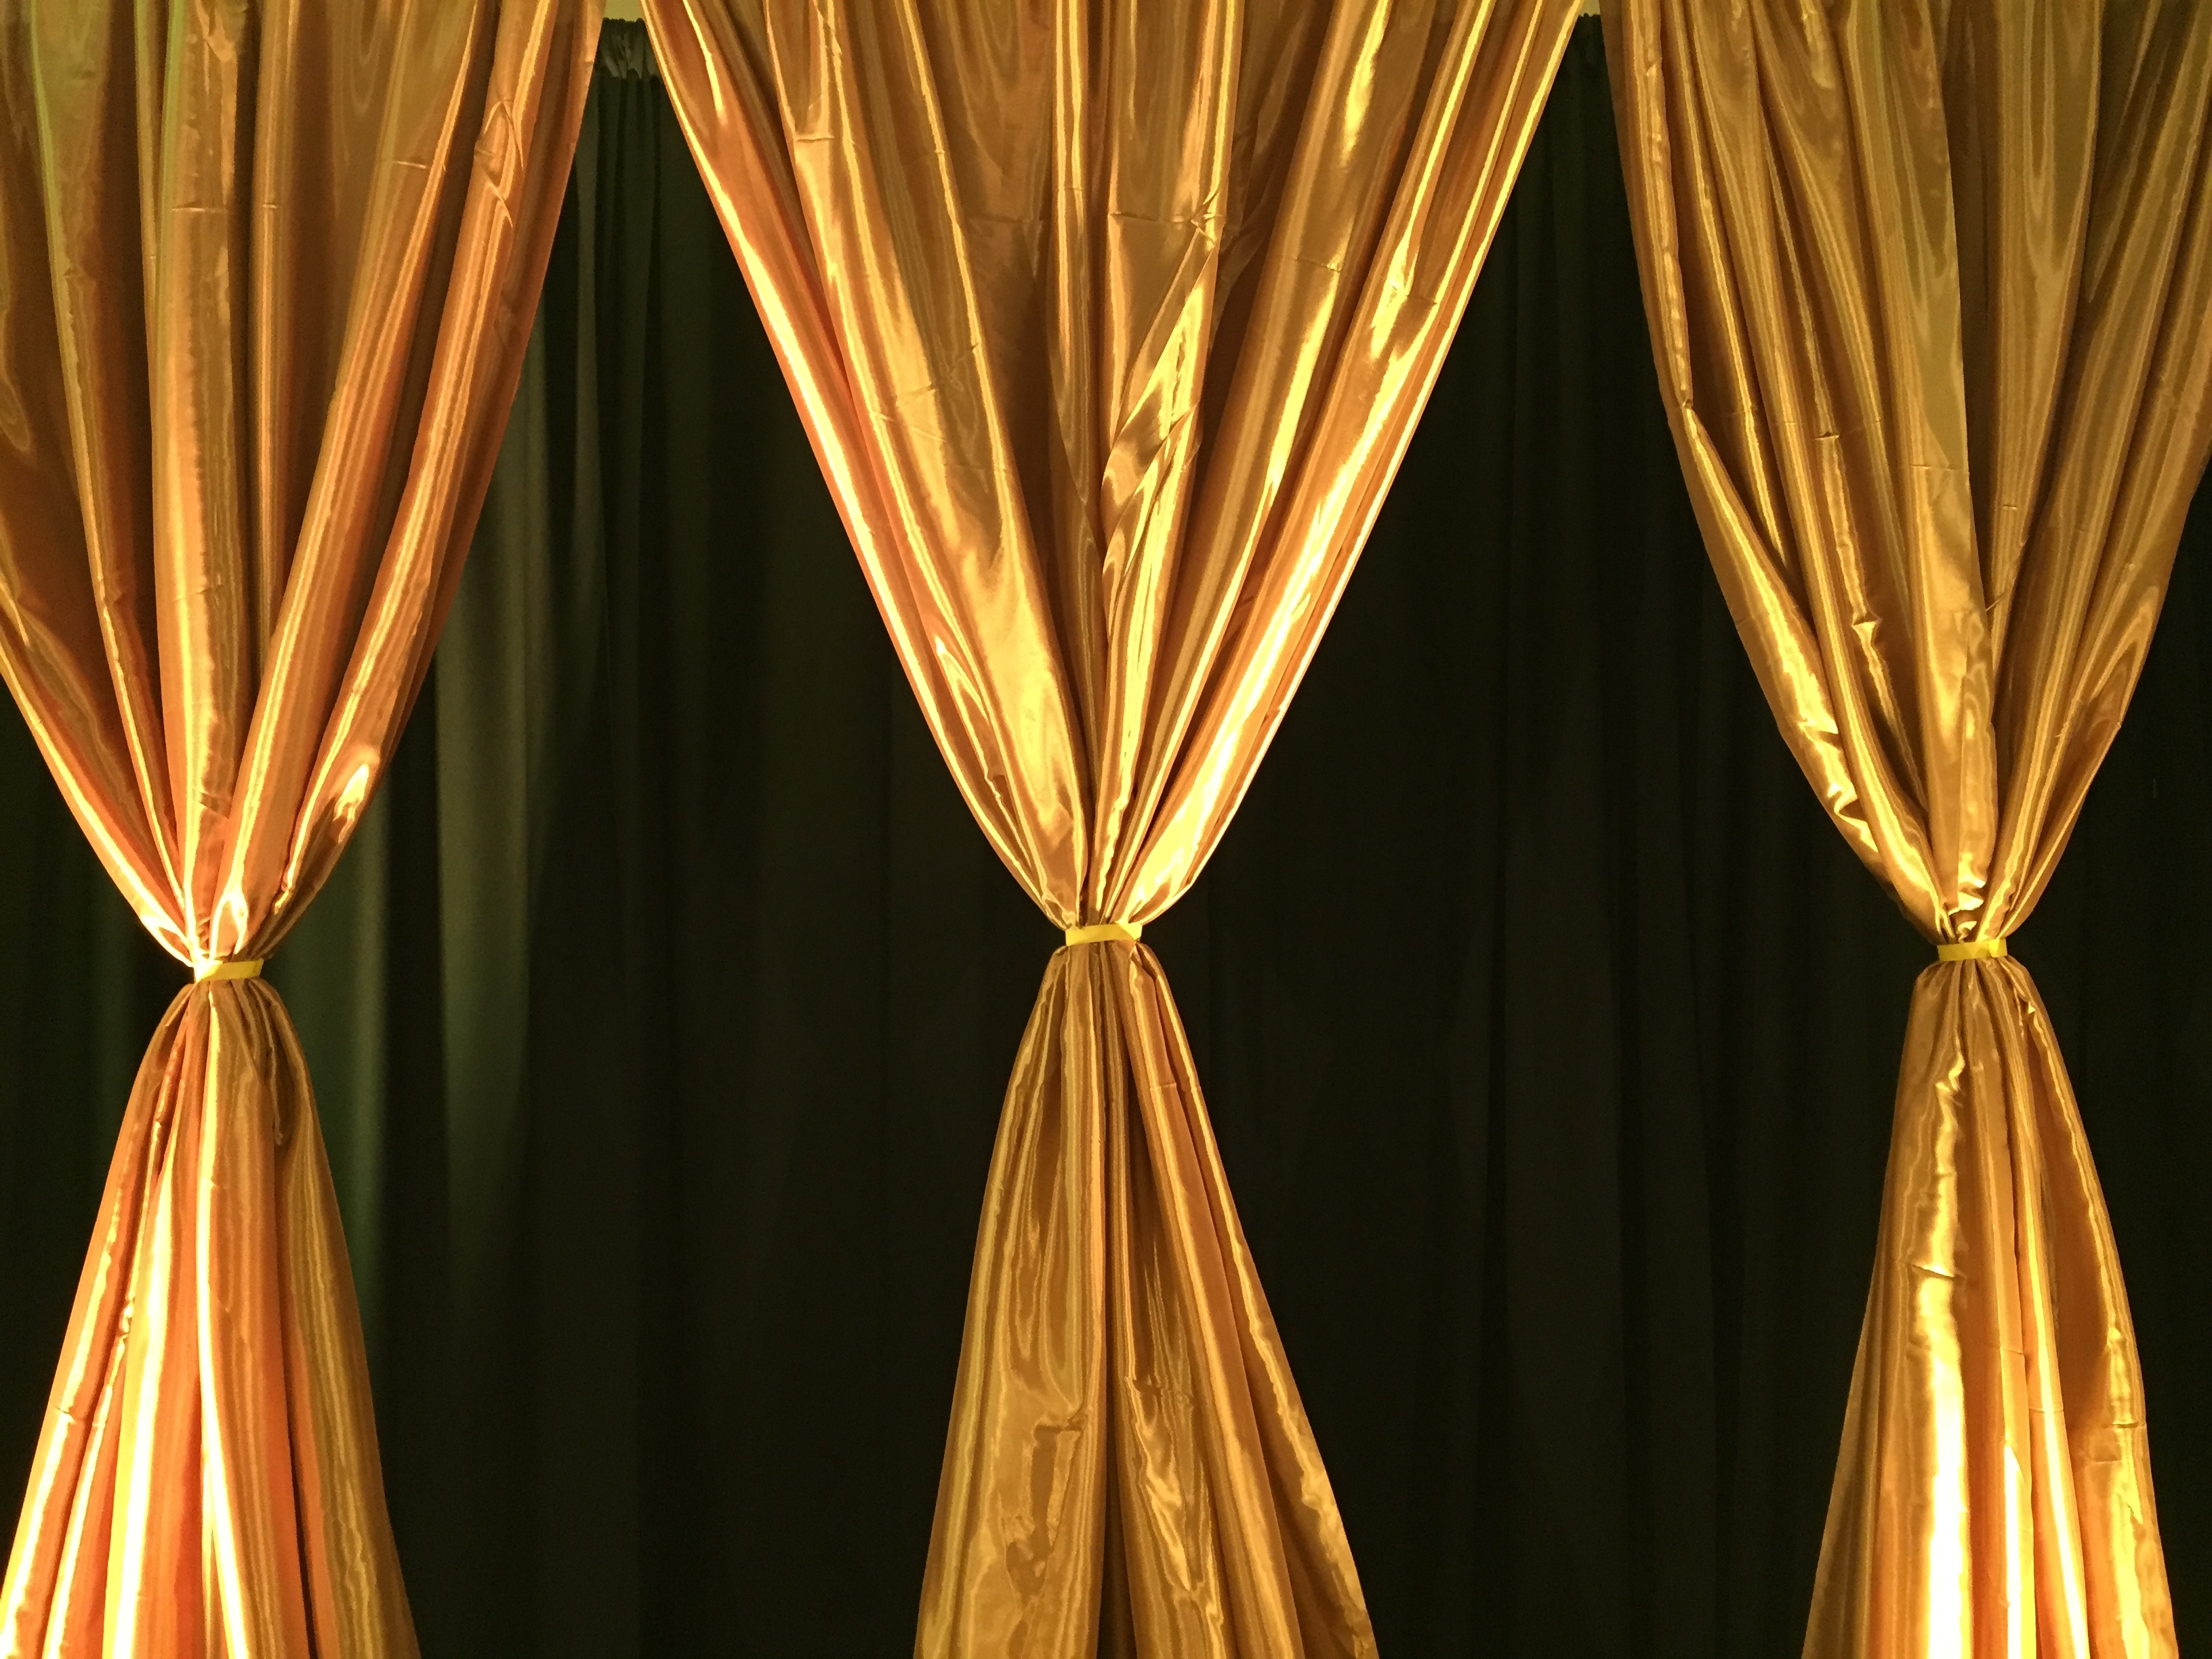 backdrop com onlineeei shown components large in and drape pipe silver drapes kits systems with blue cfm from royal